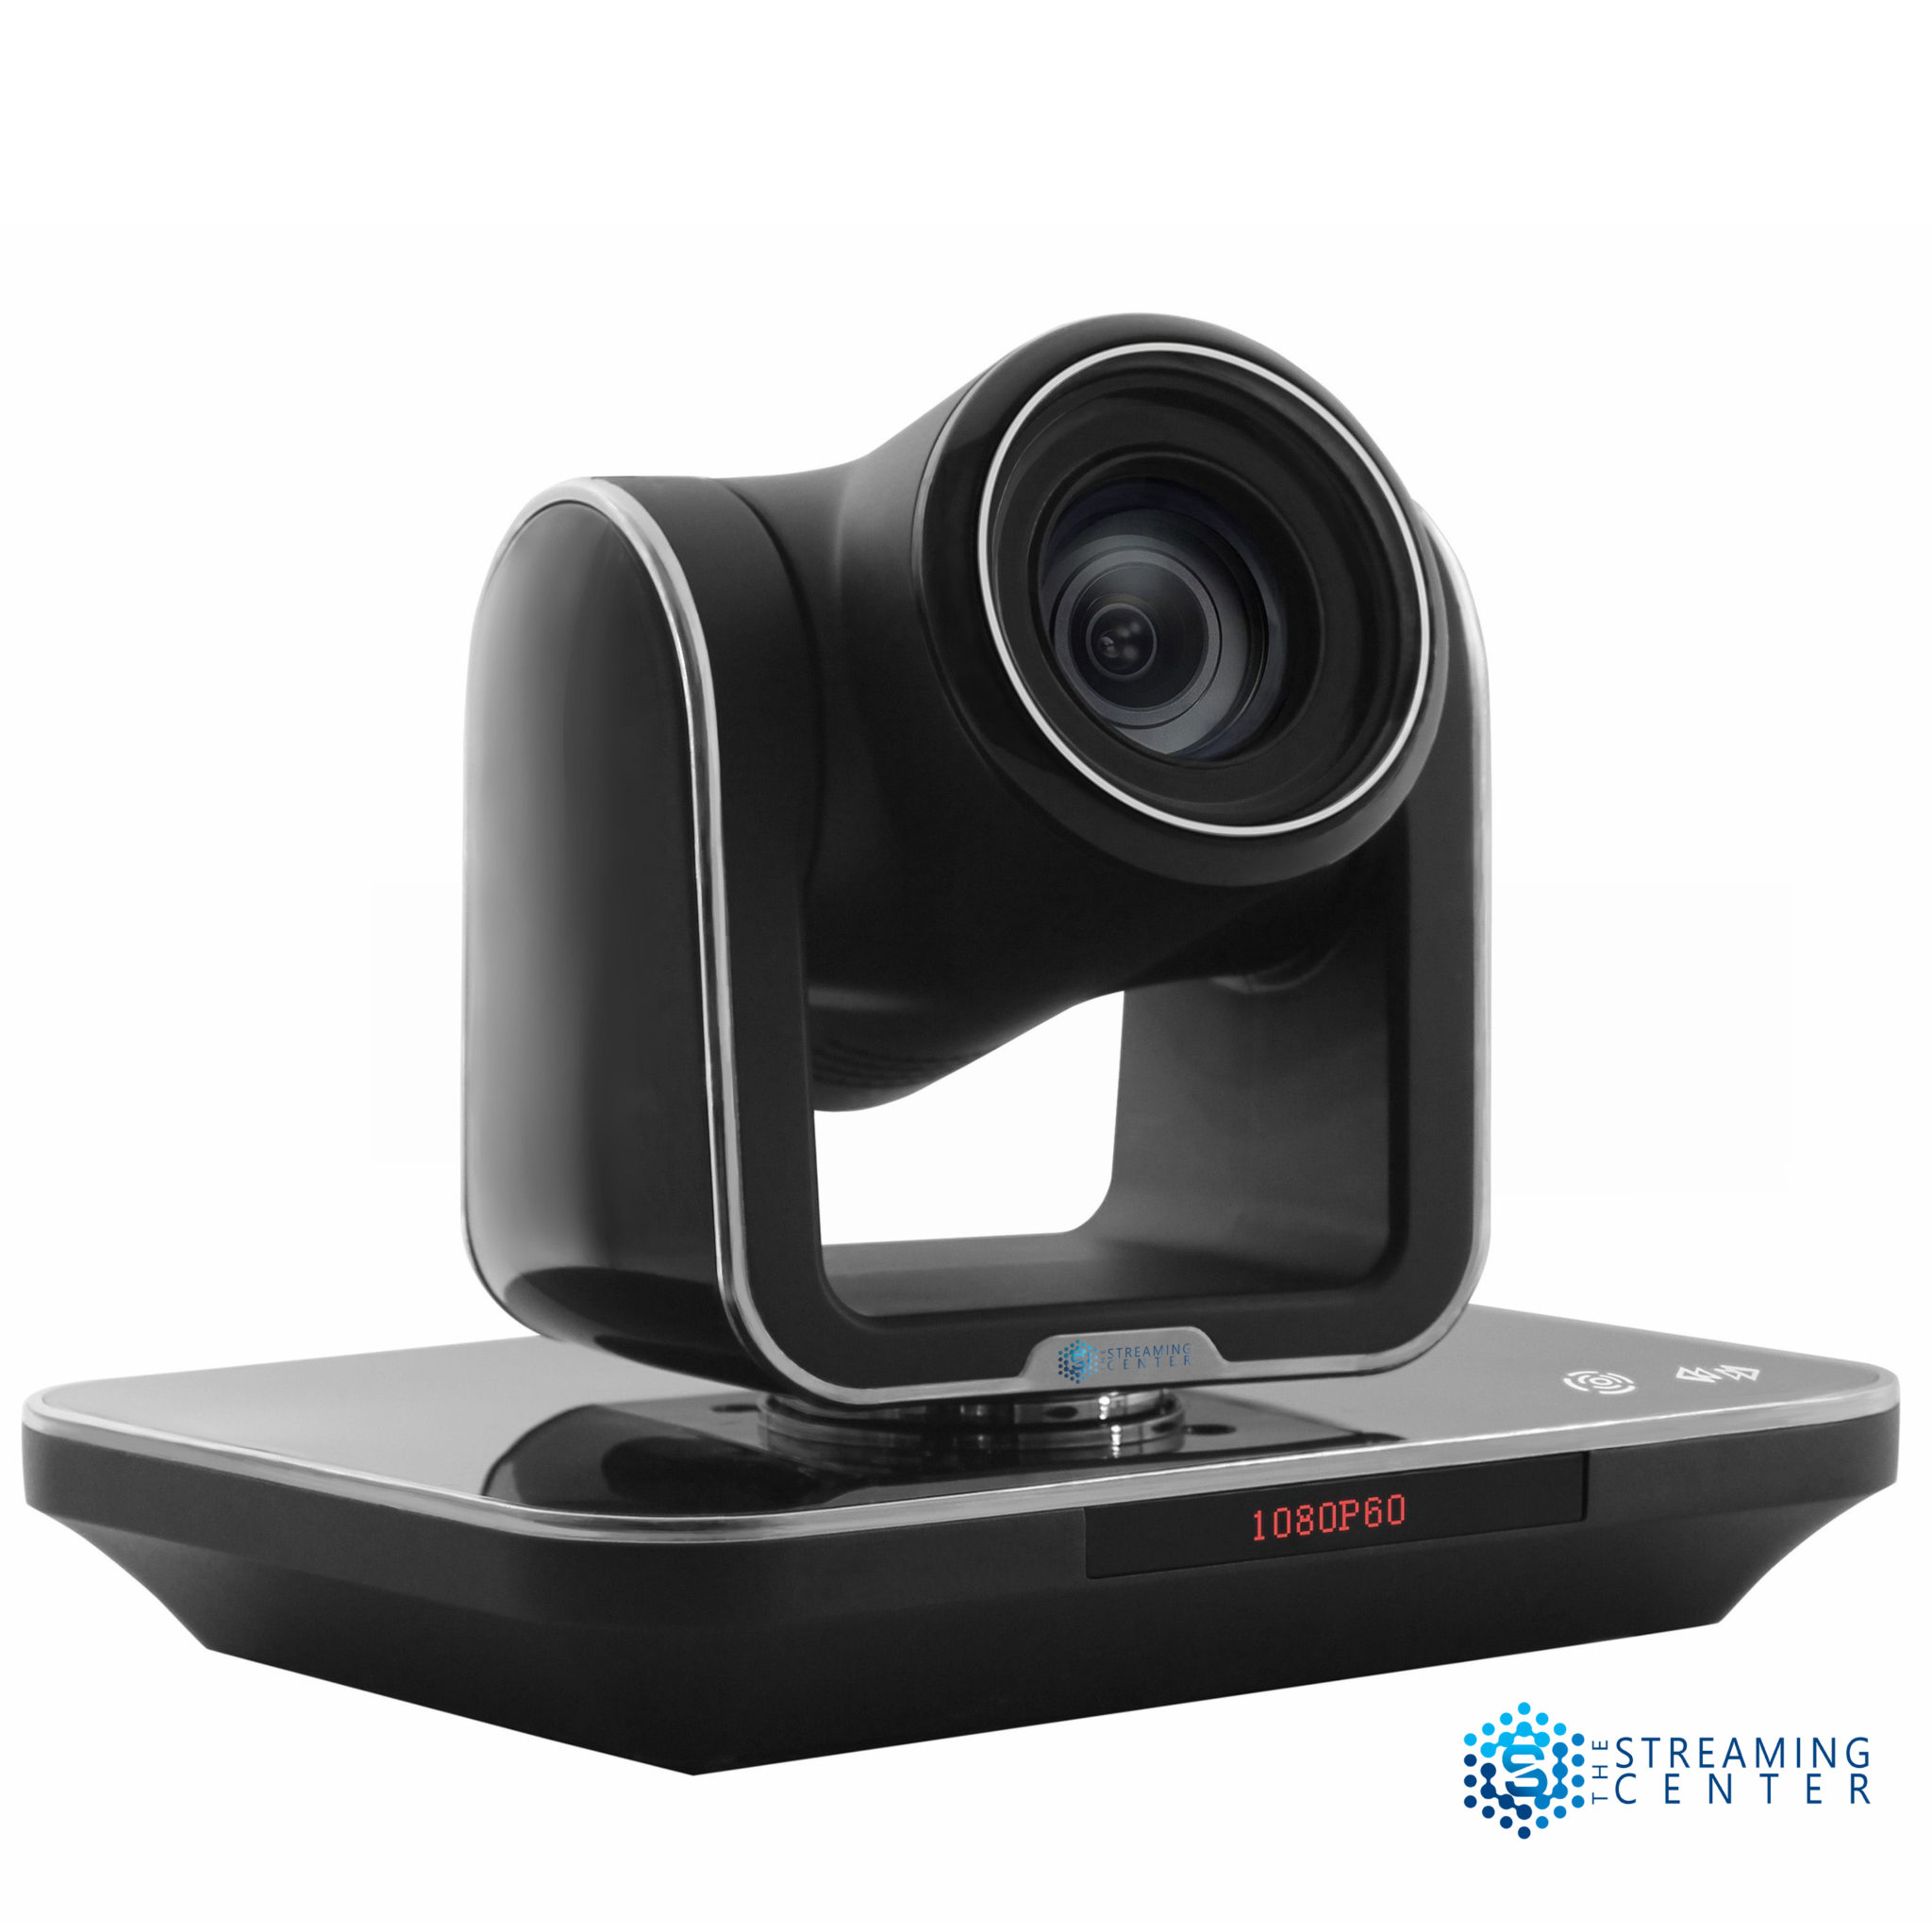 The Ultimate PTZ HD Camera | 20x Zoom, HDMI, SDI, IP, USB with SD Recording - 9